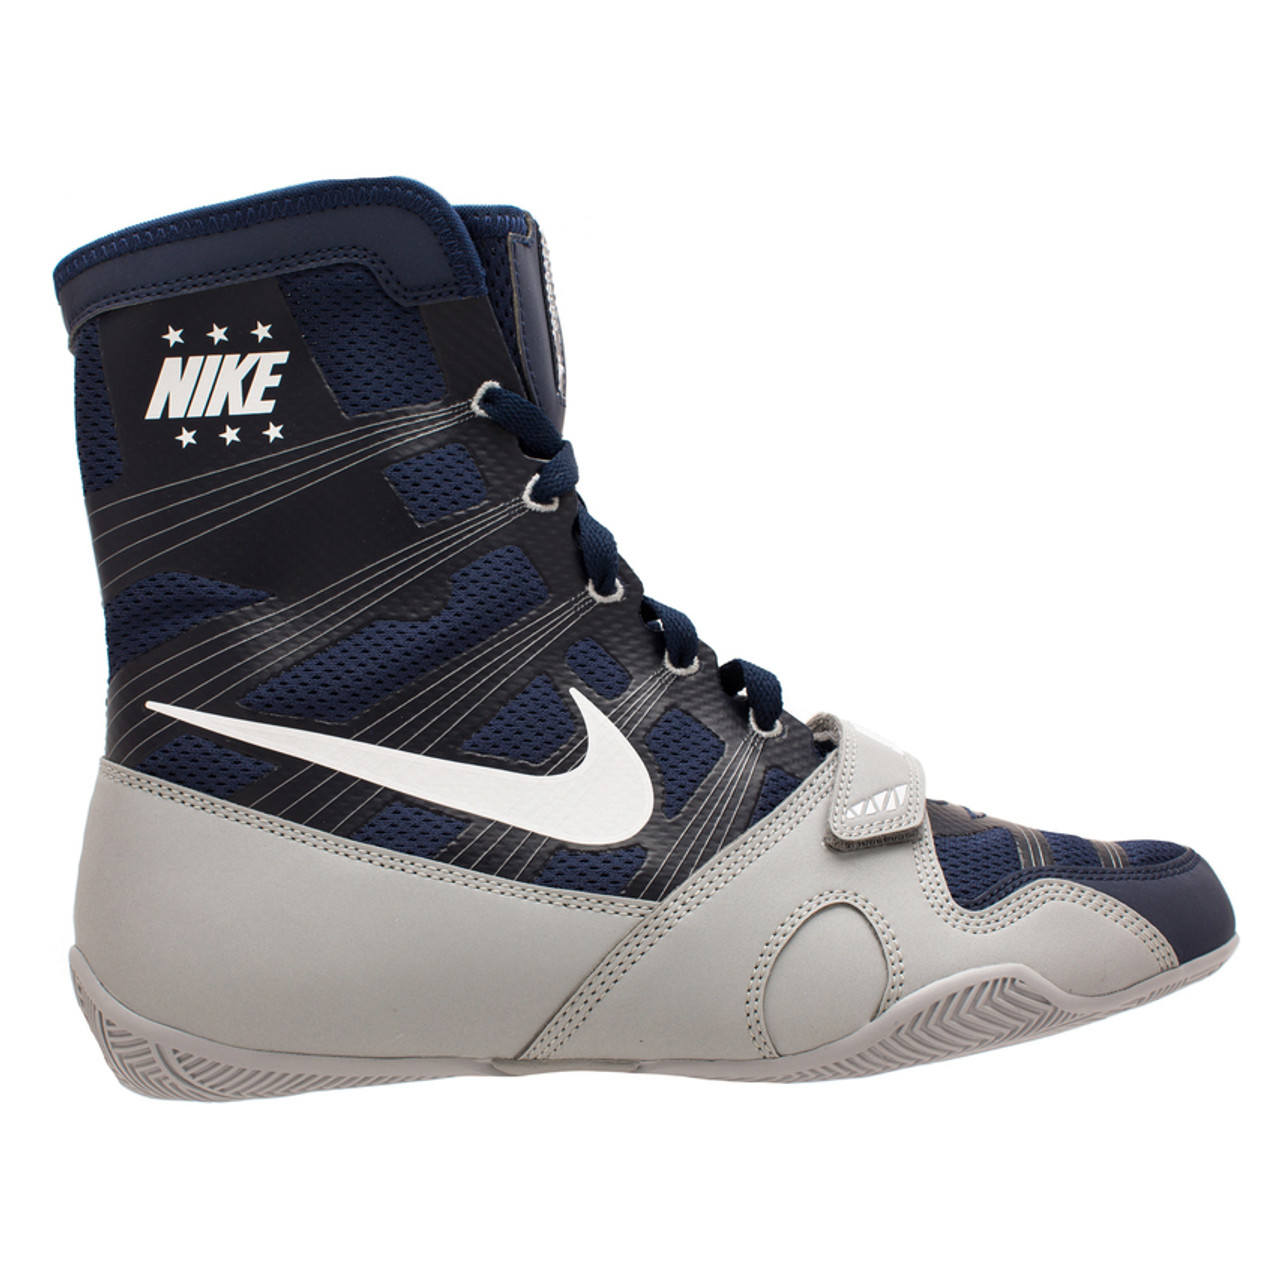 Nike Hyper KO Limited Edition Boxing Boots Navy/Silver | Made4Fighters